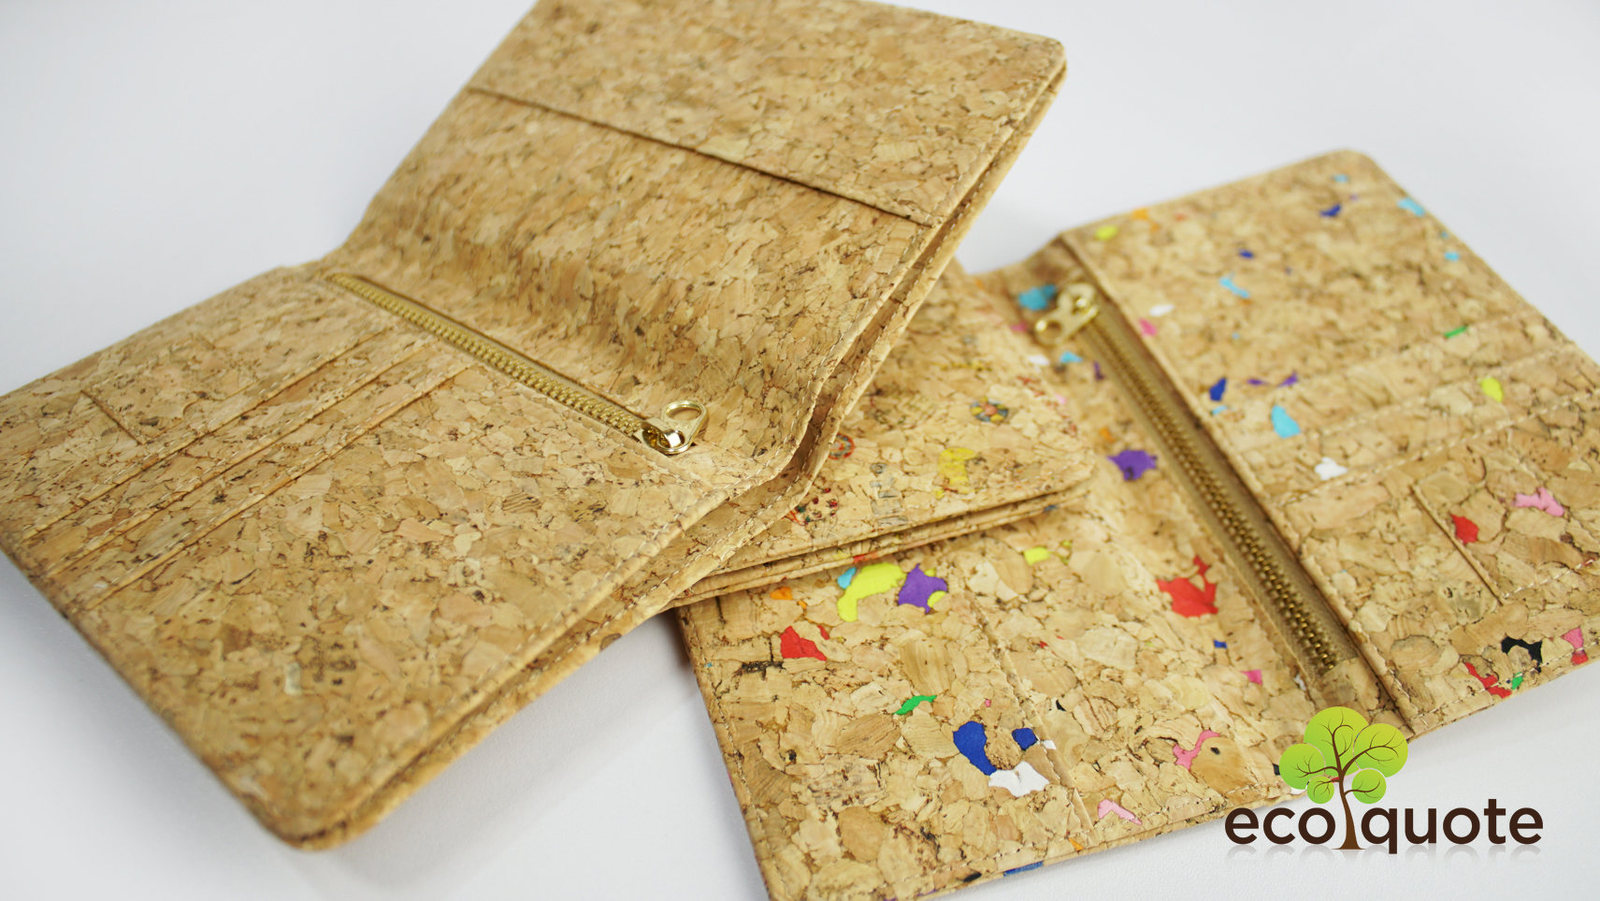 EcoQuote Passport Cover Deluxe Handmade Cork Material Eco Friendly for Vegan